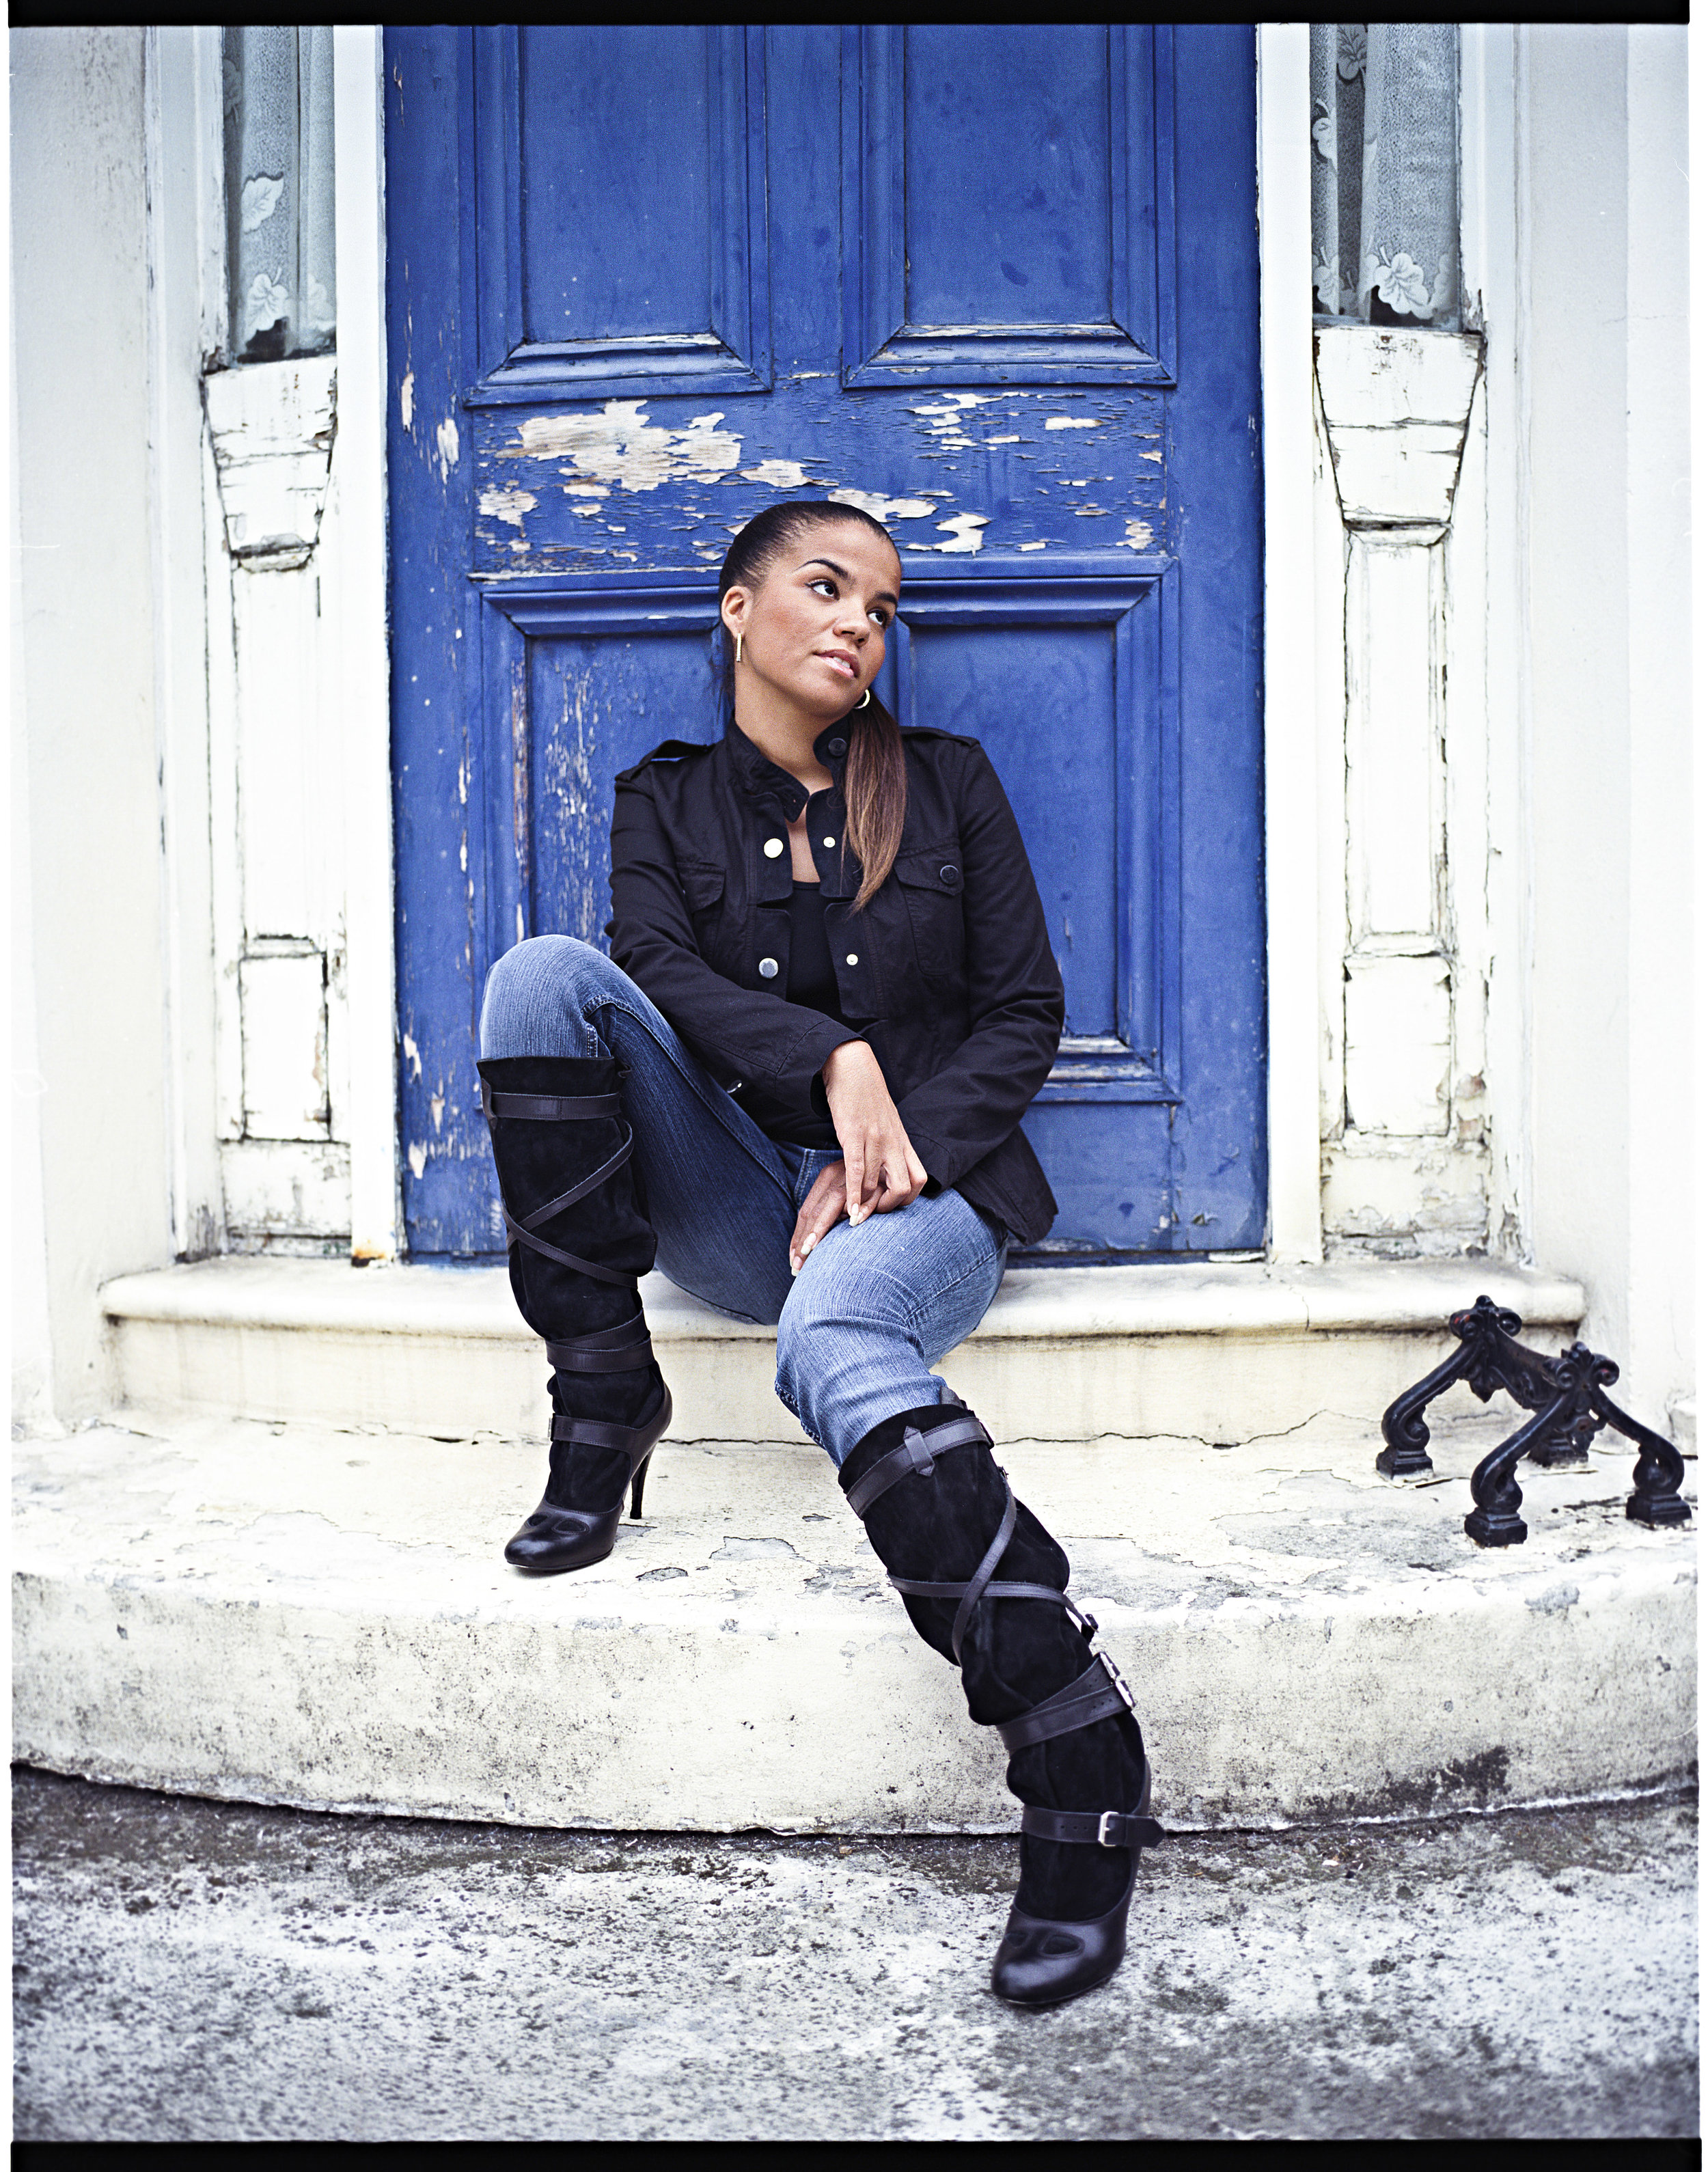 Ms Dynamite - Photographed for the Black Britannia Photo Exhibition